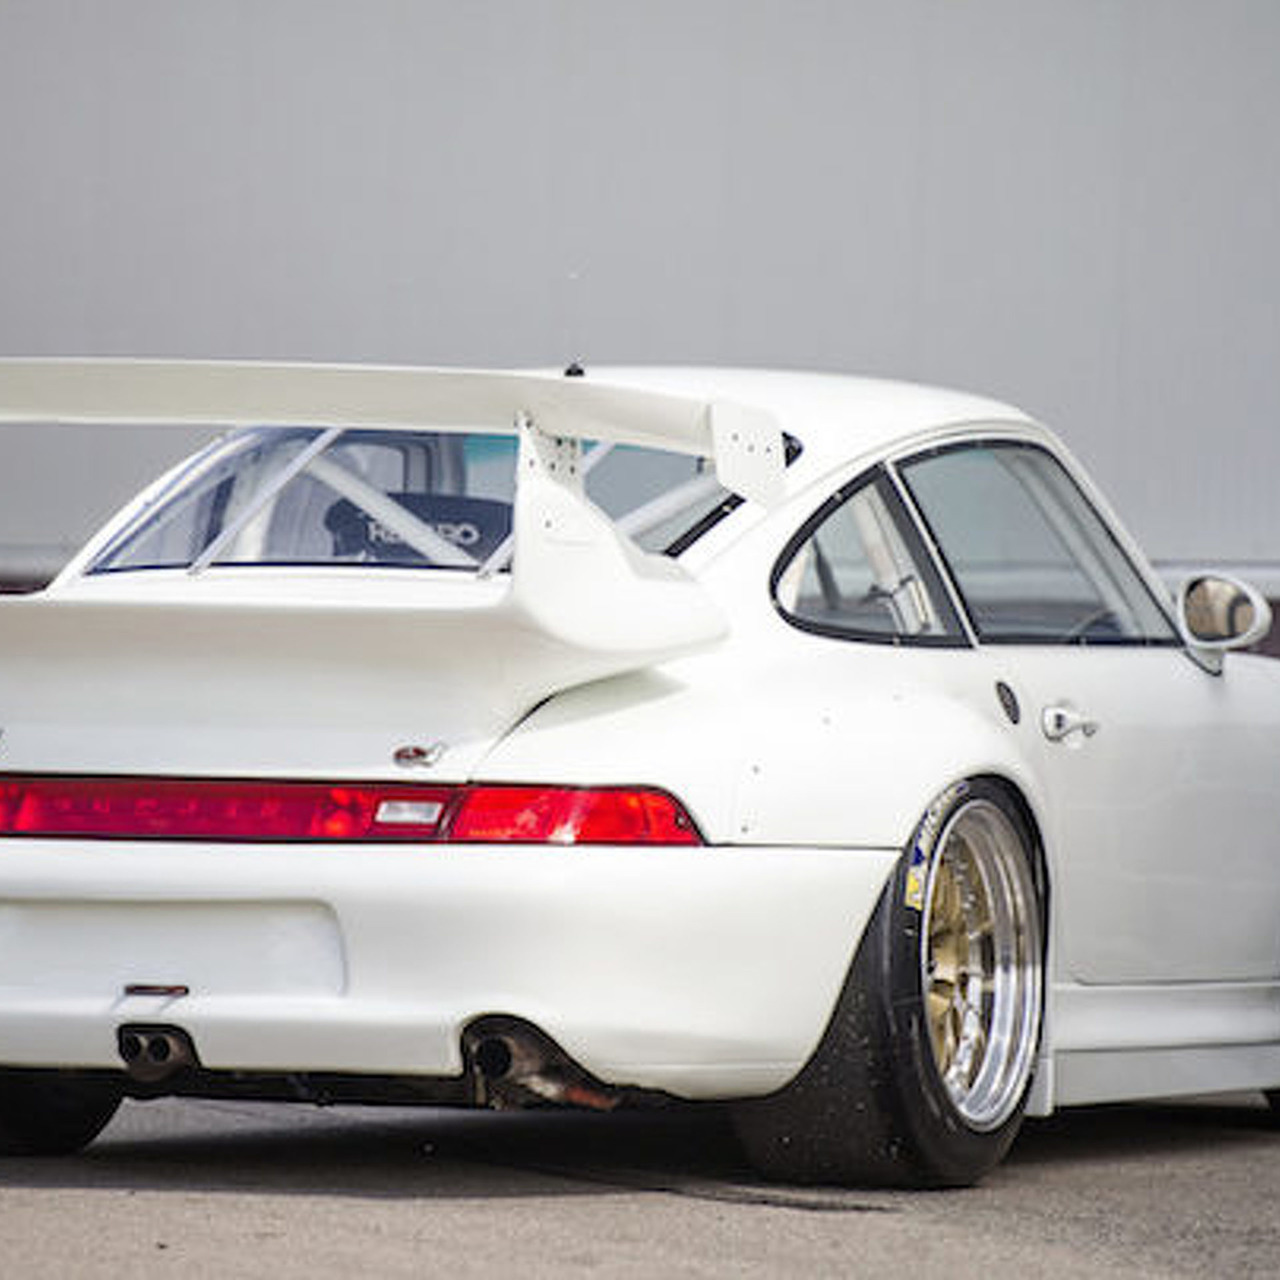 A 1995 Porsche 911 GT2 Evo is as Raw and Rare as it Gets